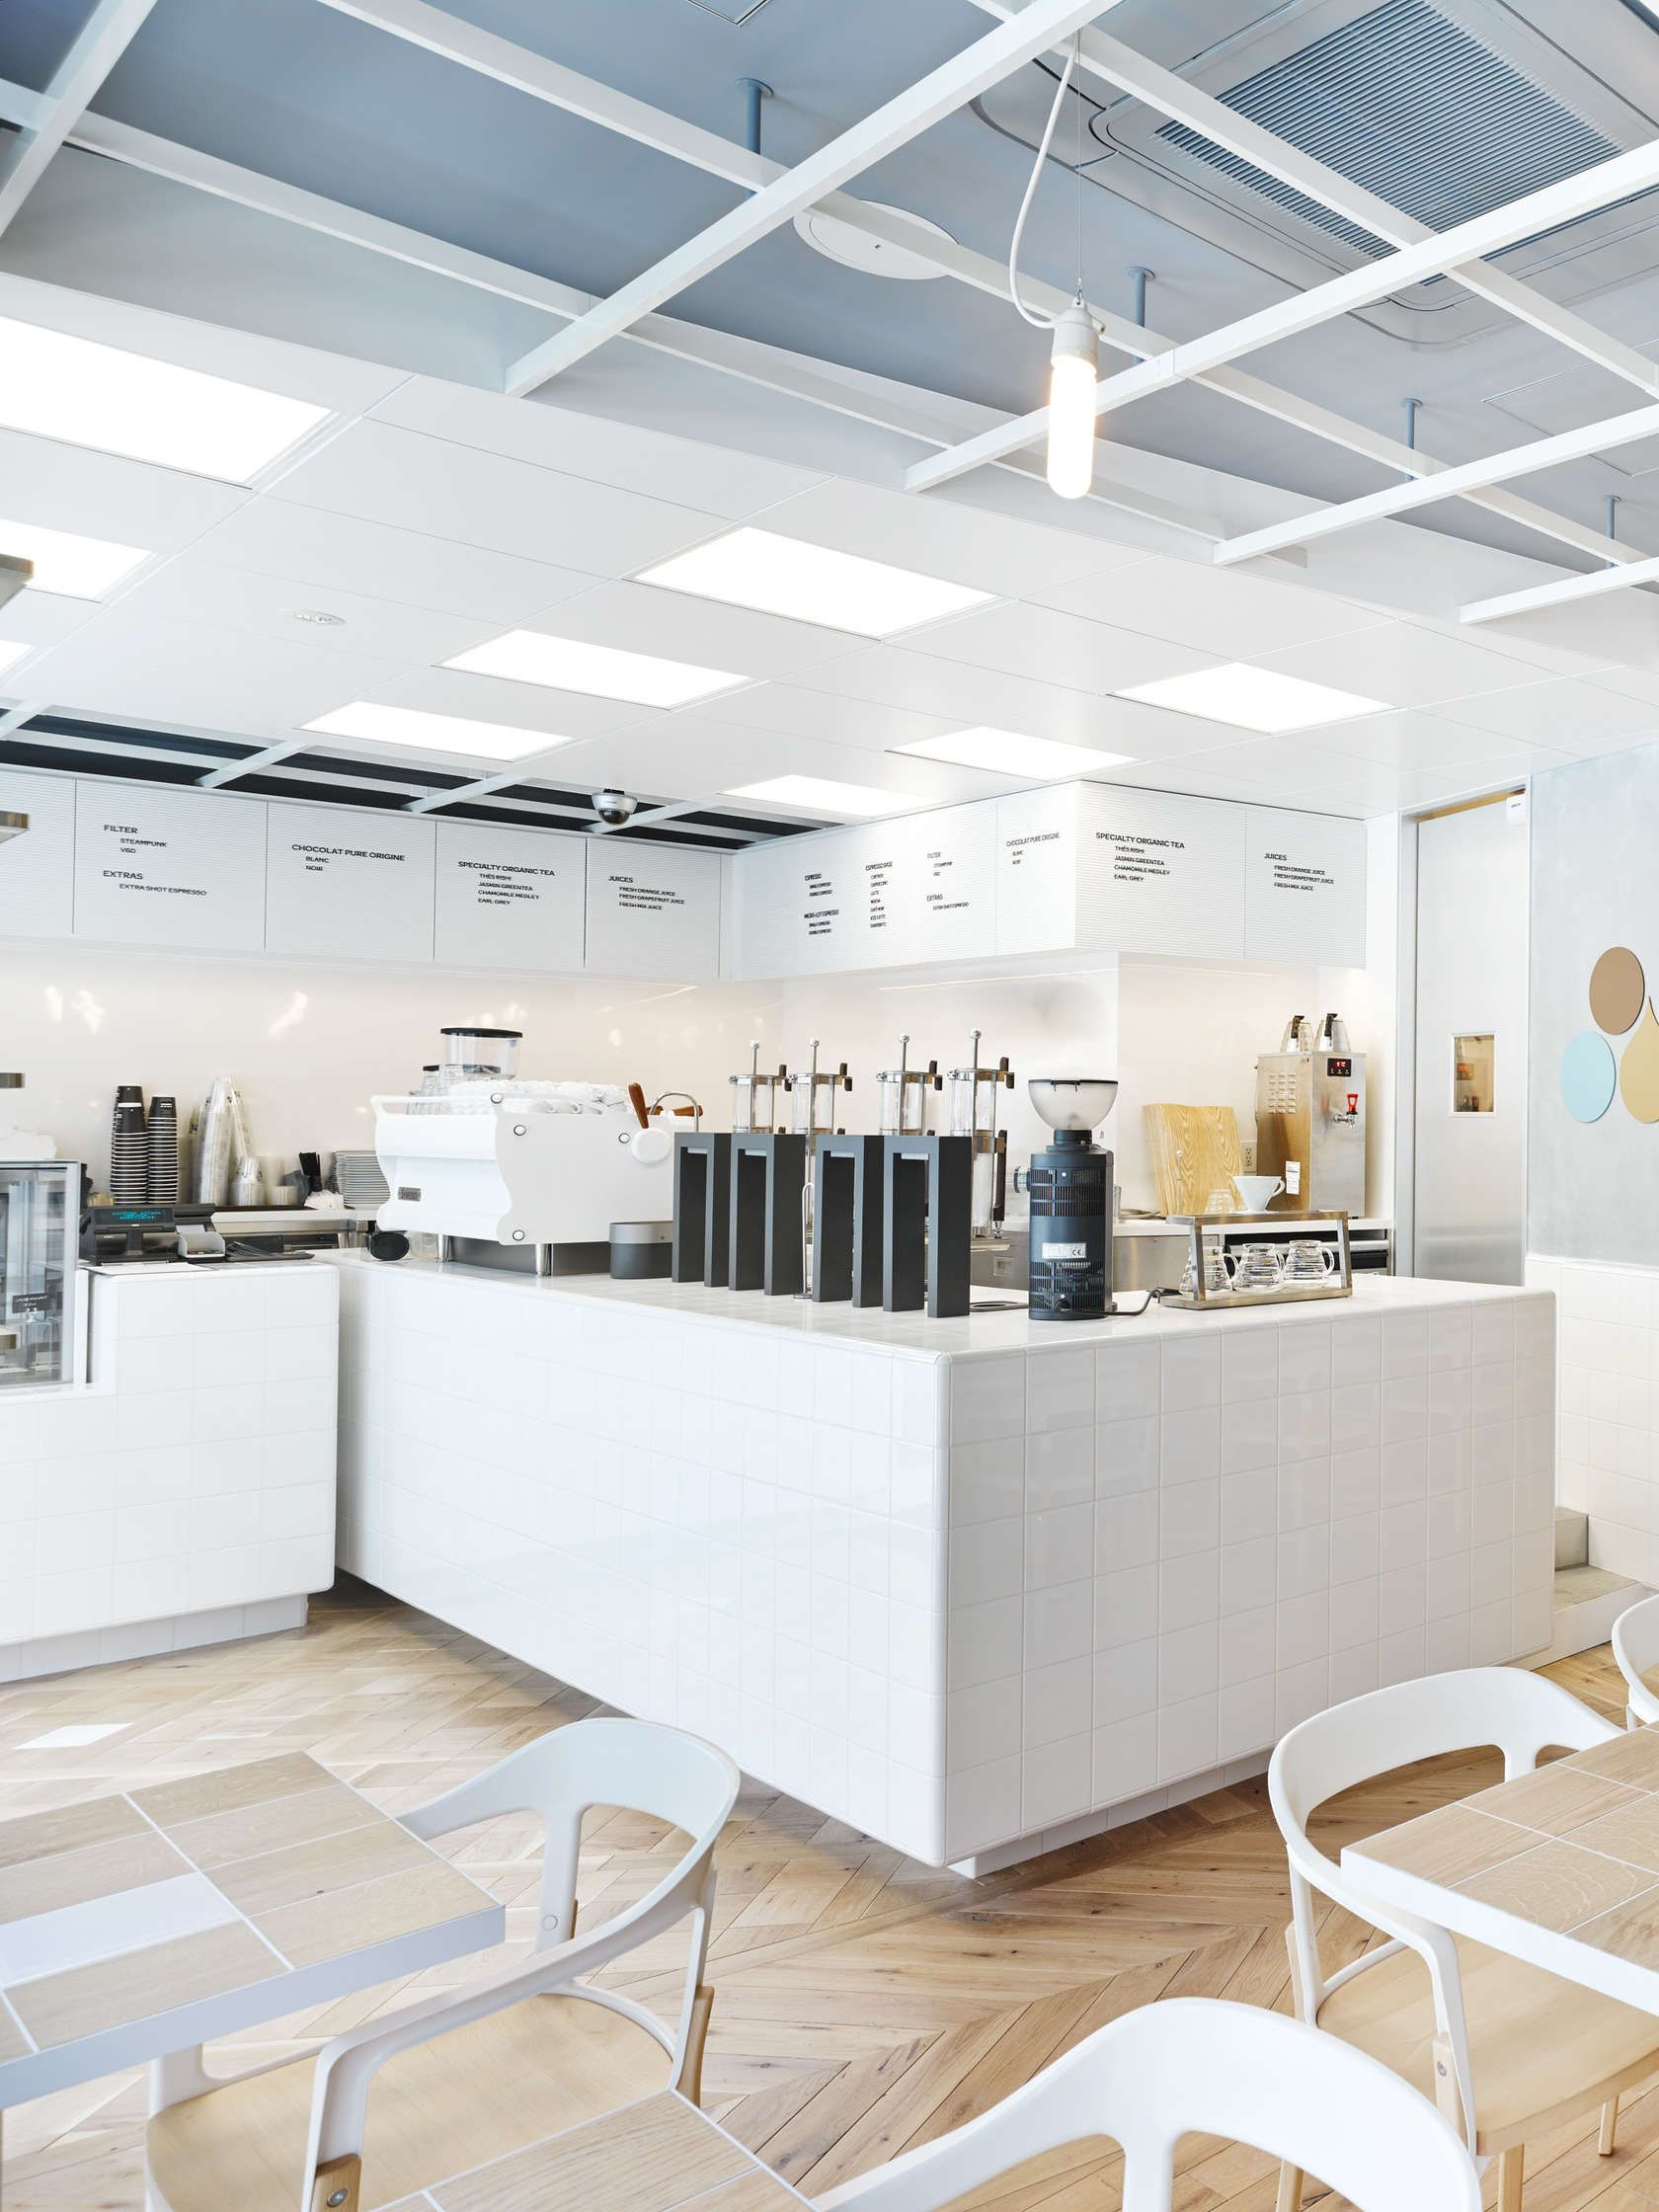 Love this laboratory inspired coffee bar and how they utilize a minimalist menu wrapped on the wall and simple square white tiles